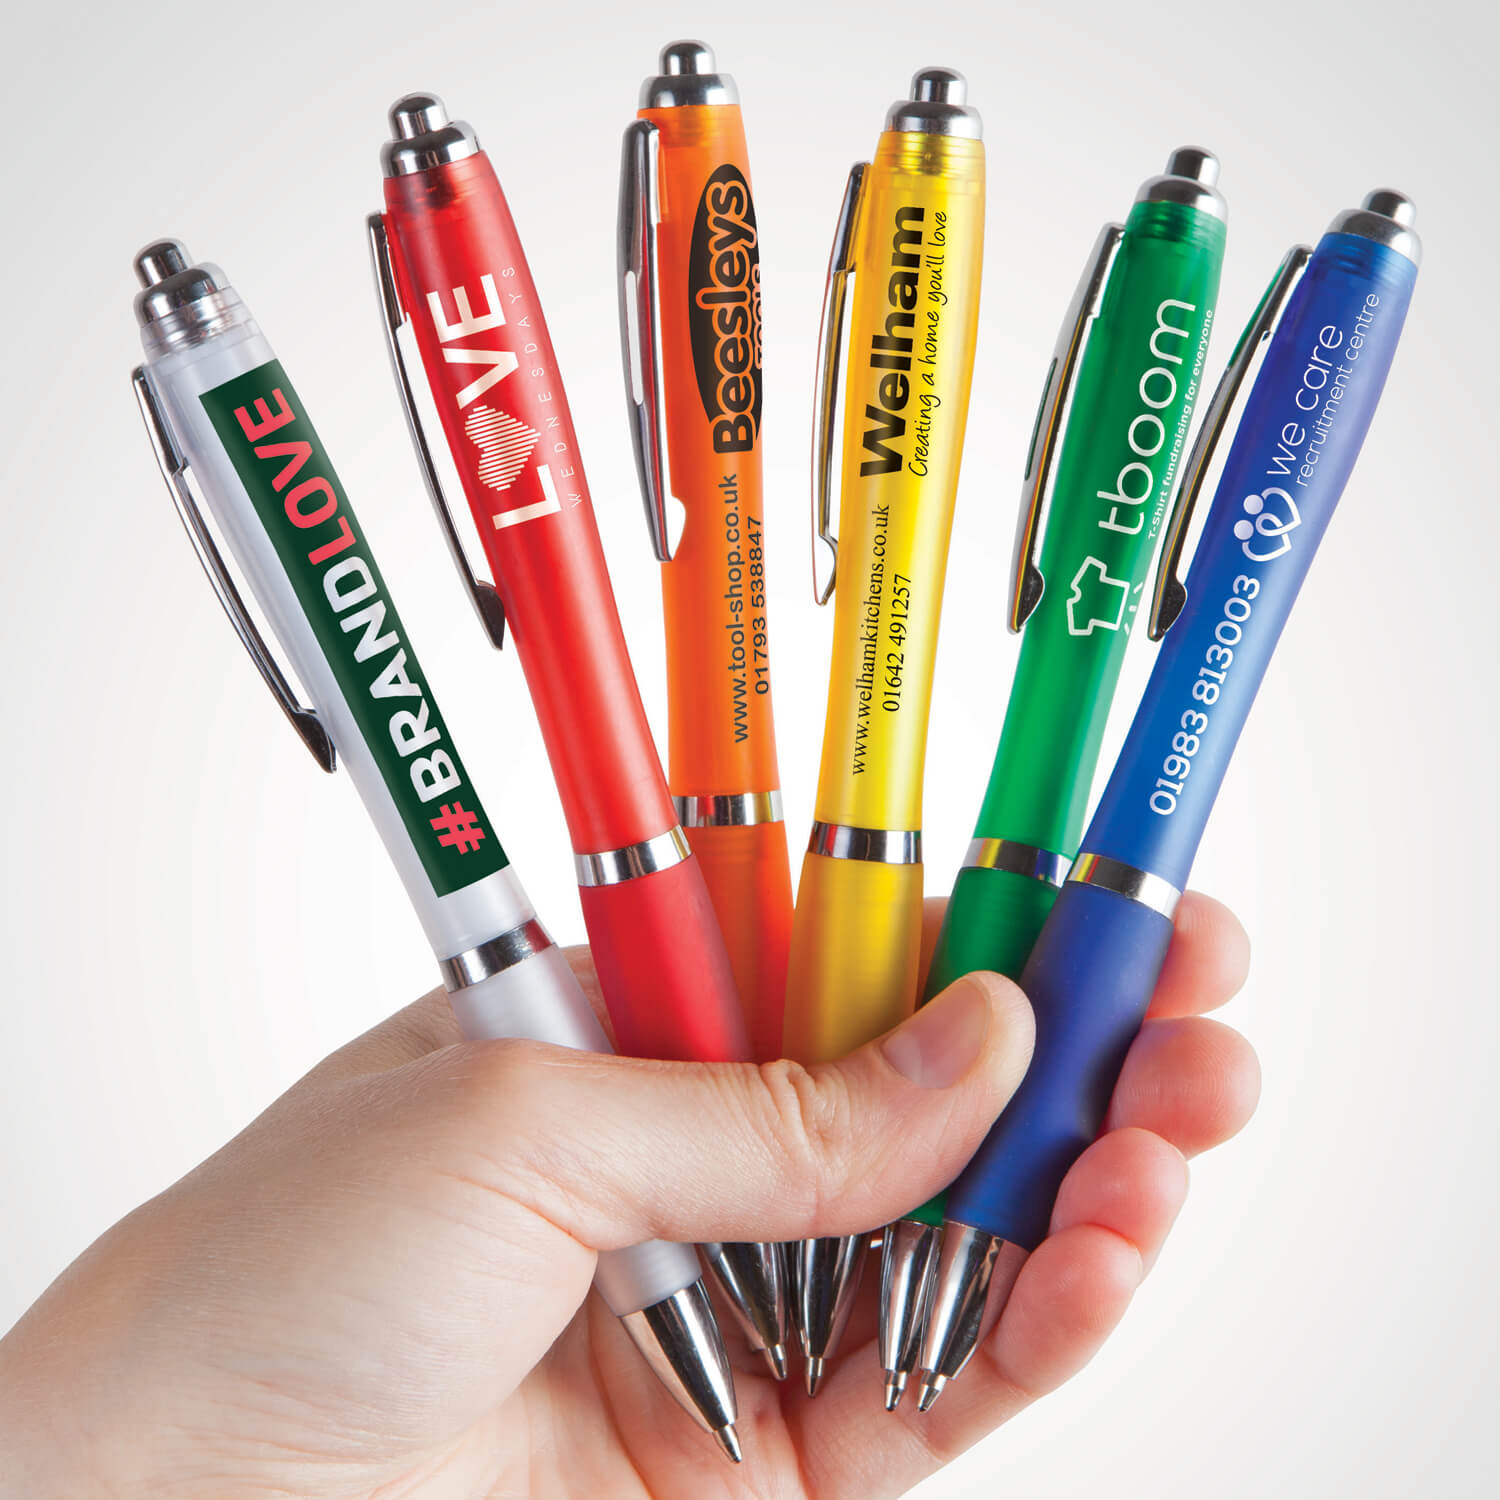 Curvy Promotional Pens